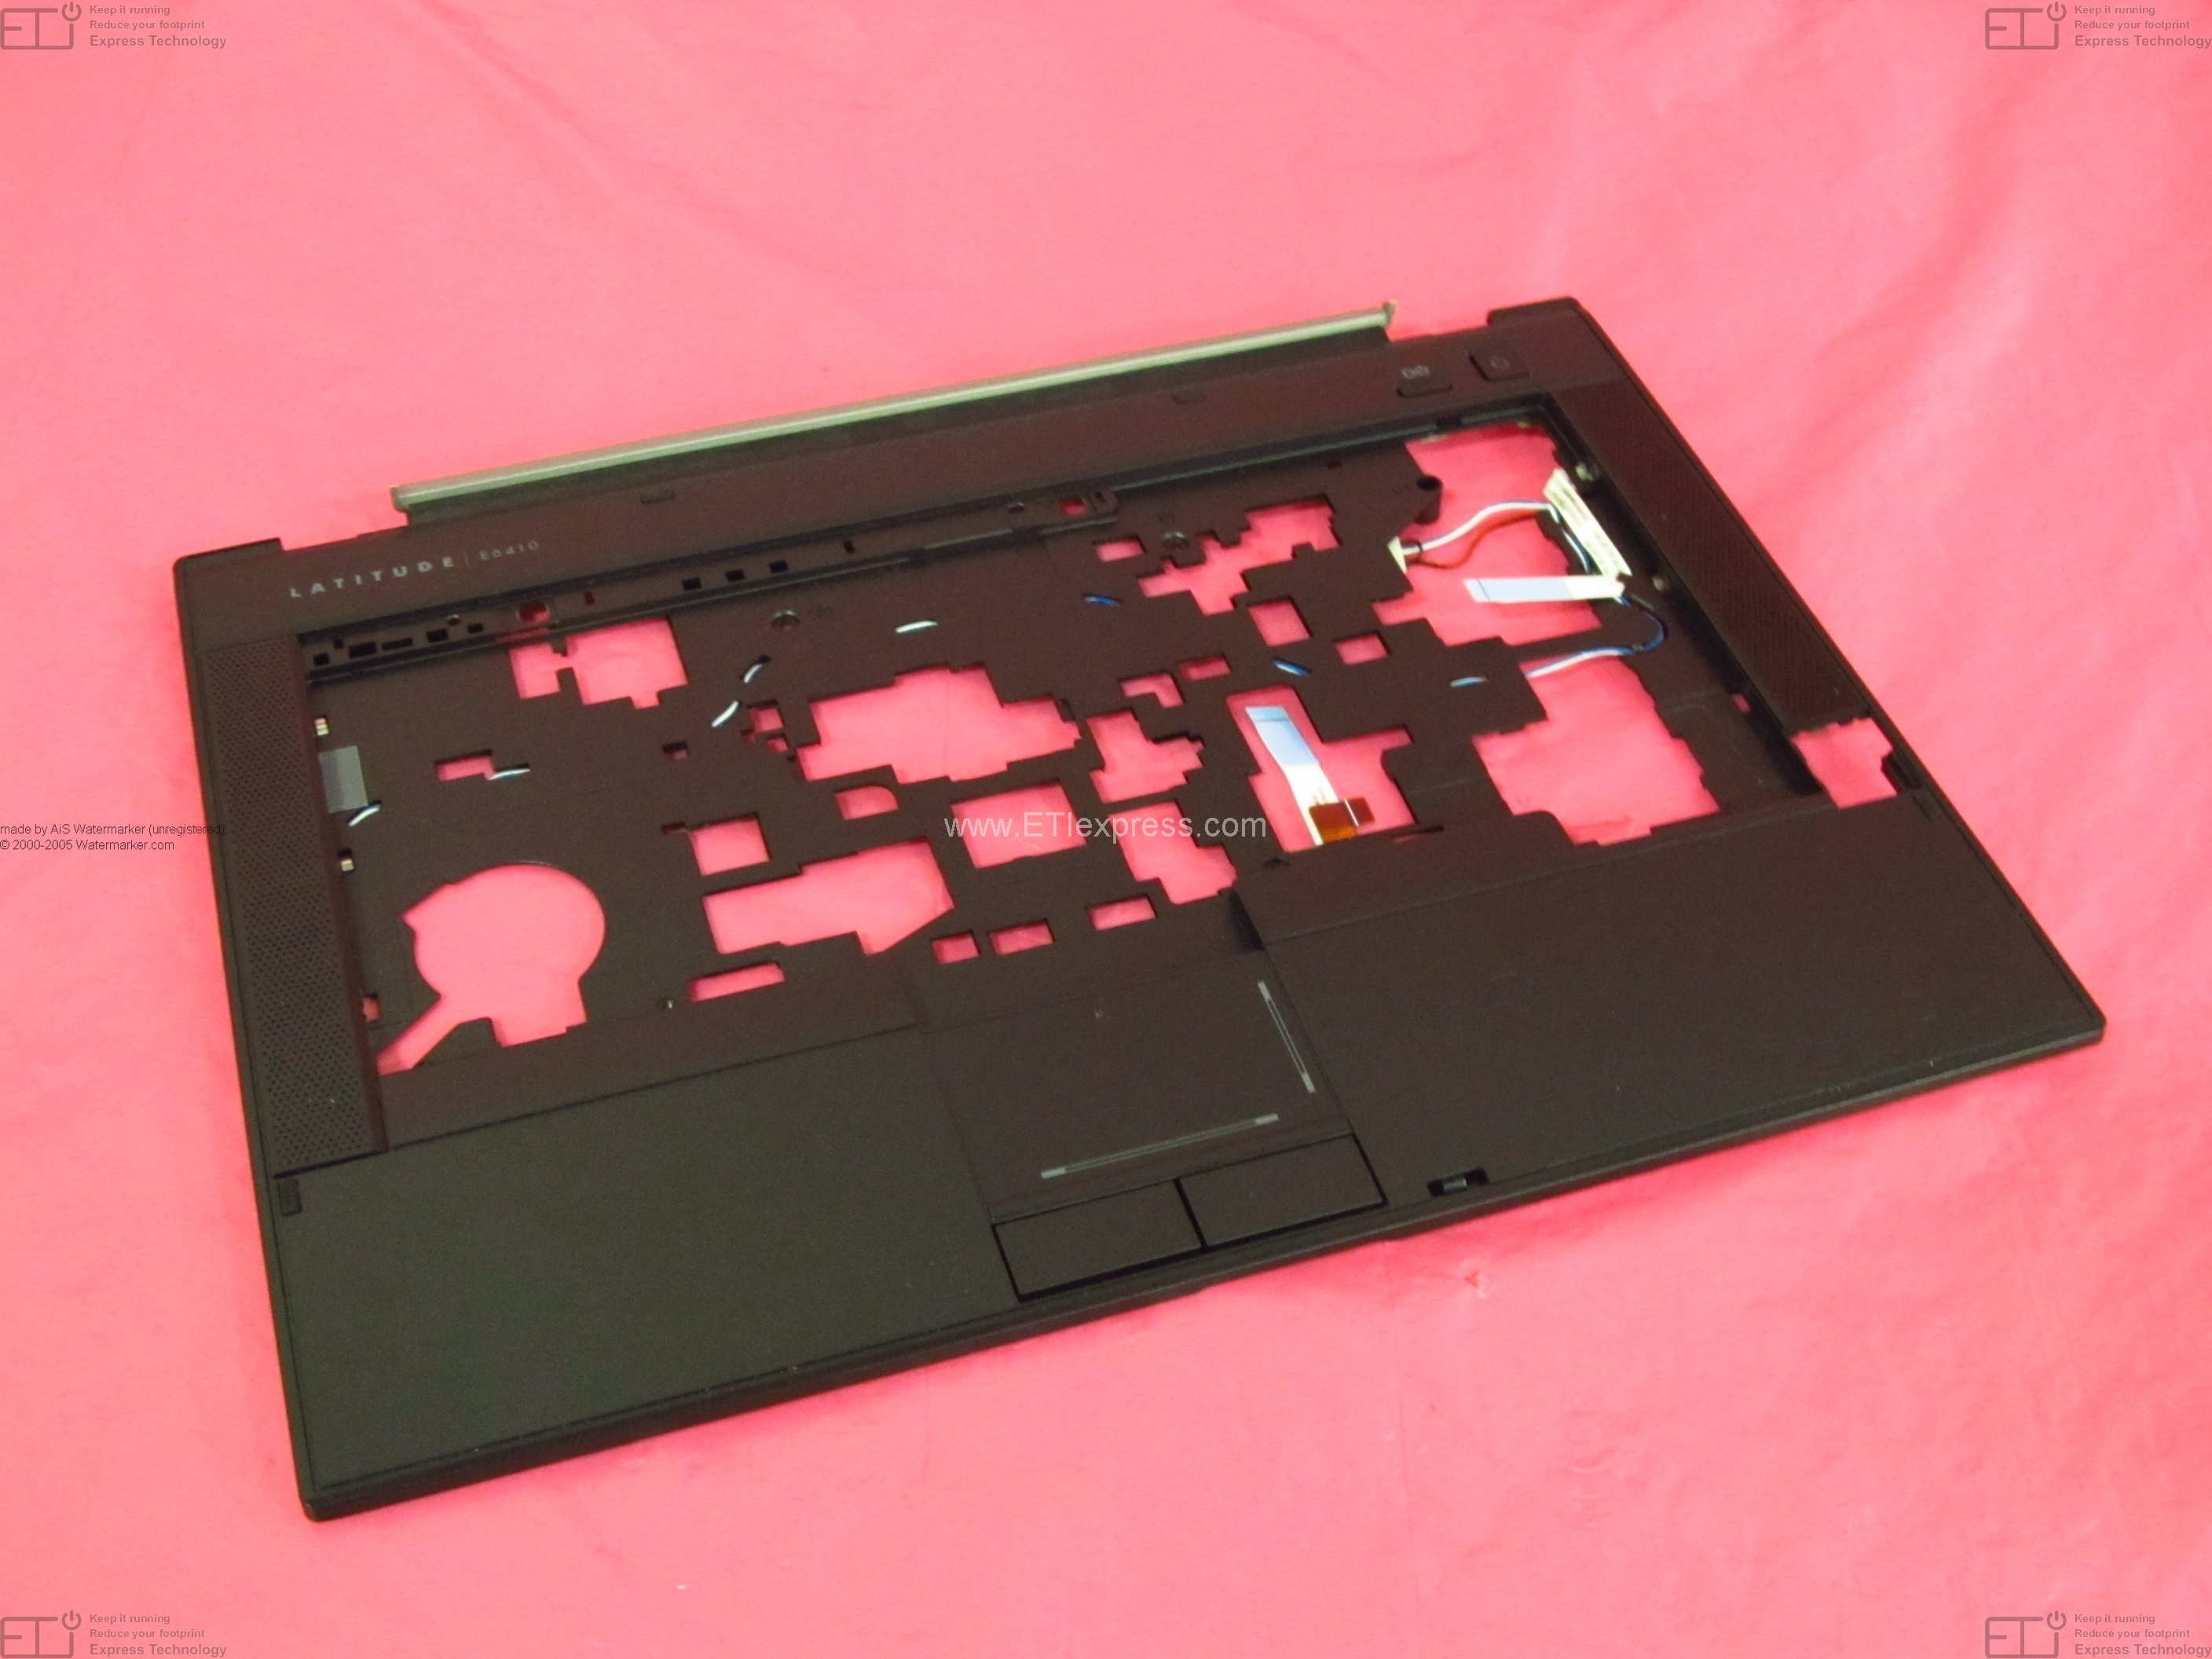 XX279 Dell Latitude E6500 15.4 Dual CCFL LCD Top Back Cover Lid Assembly with Hinges XX279 Grade B CP219